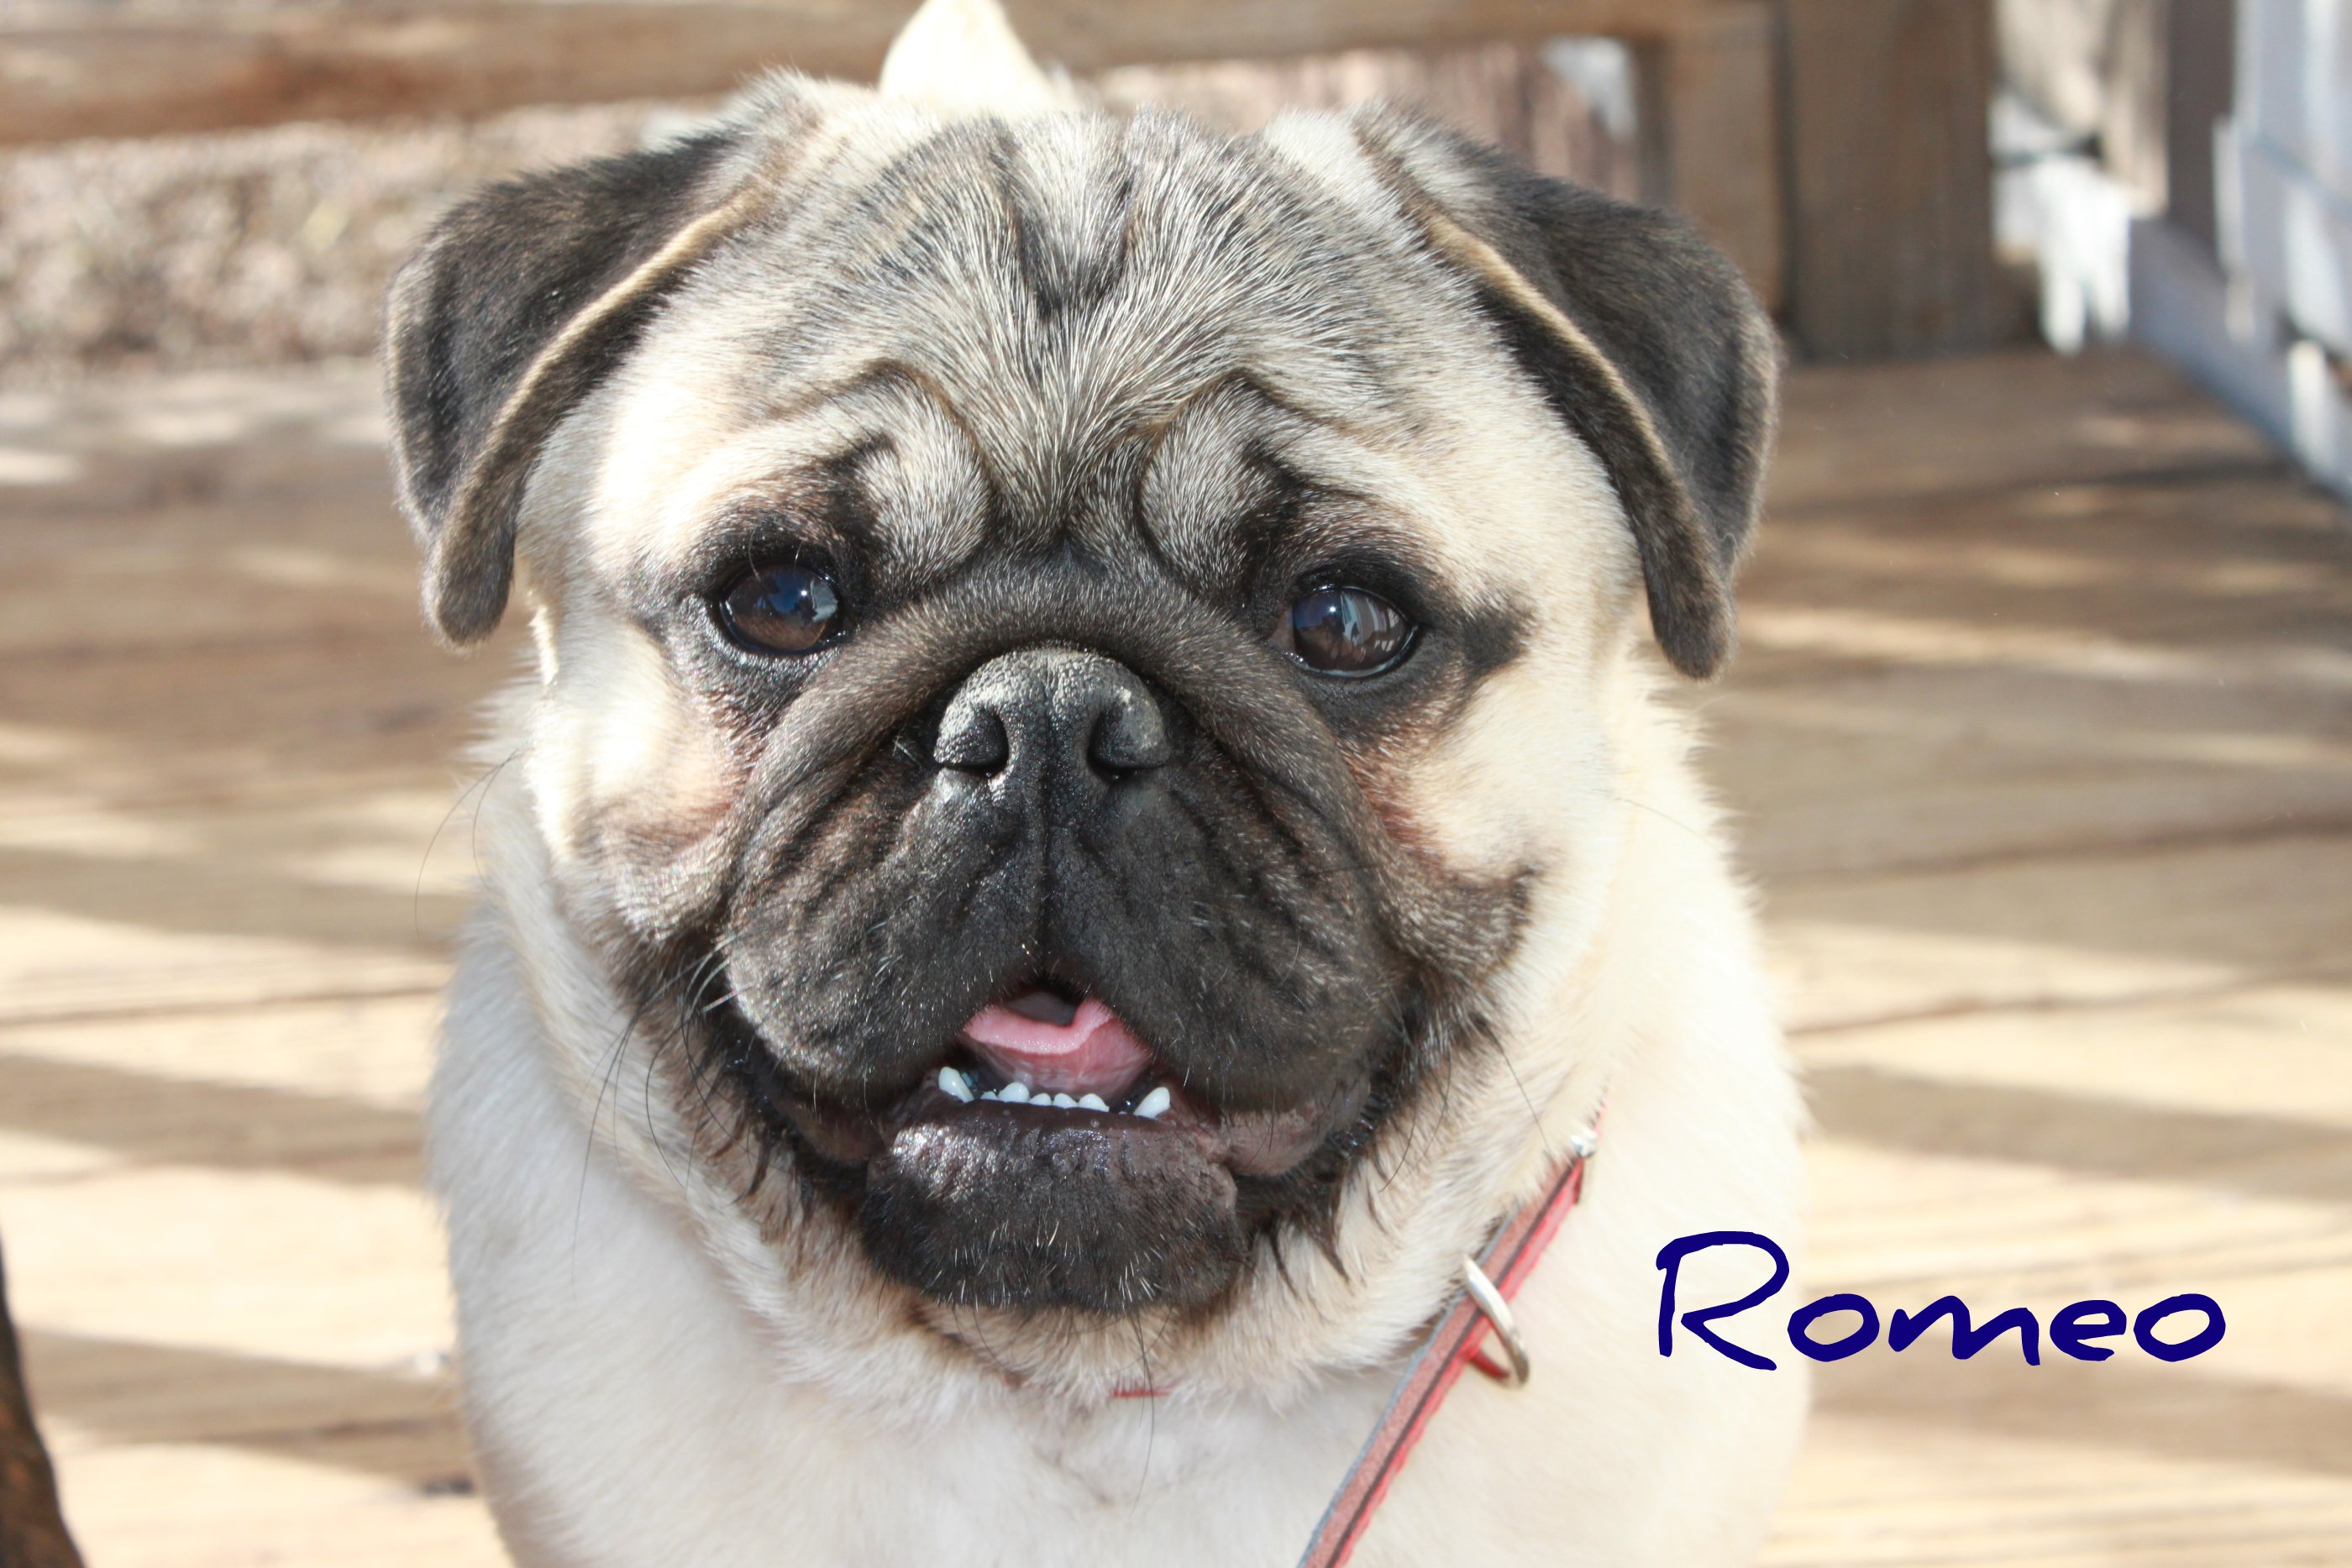 Romeo the love dr d o b 5 24 10 akc registered